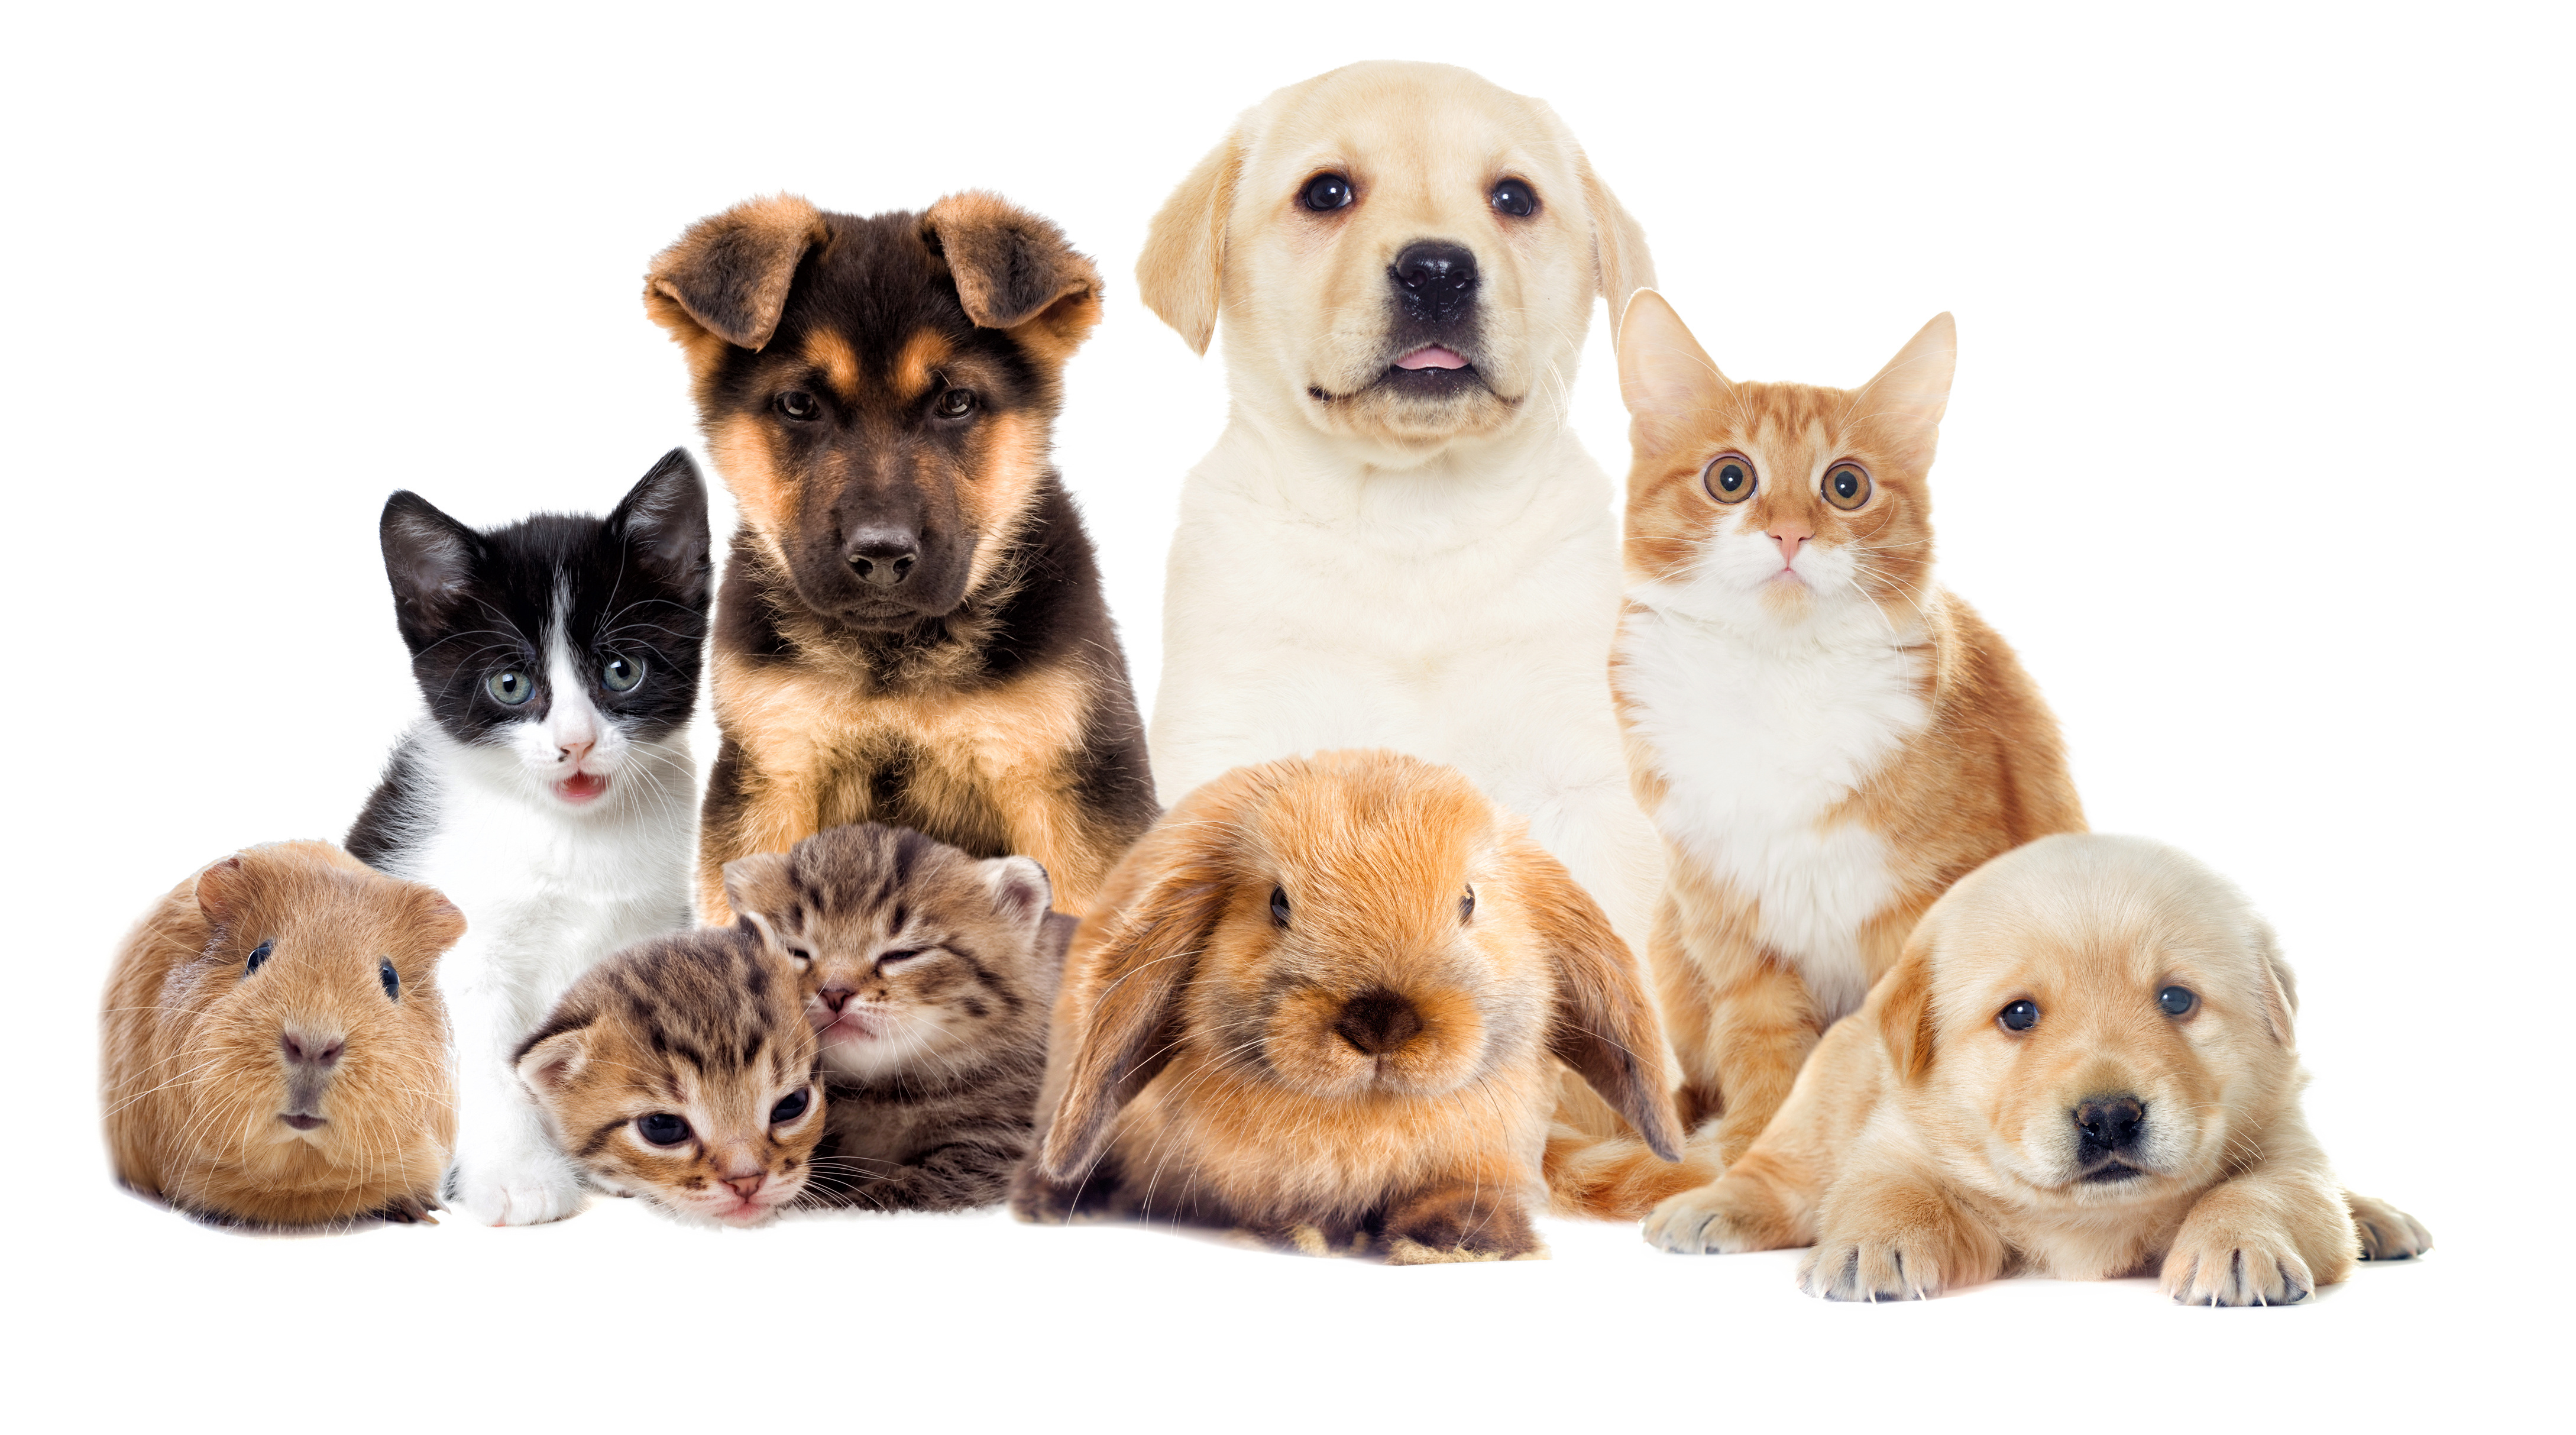 Pets Health Insurance – Wise Investment Or Waste of Money?